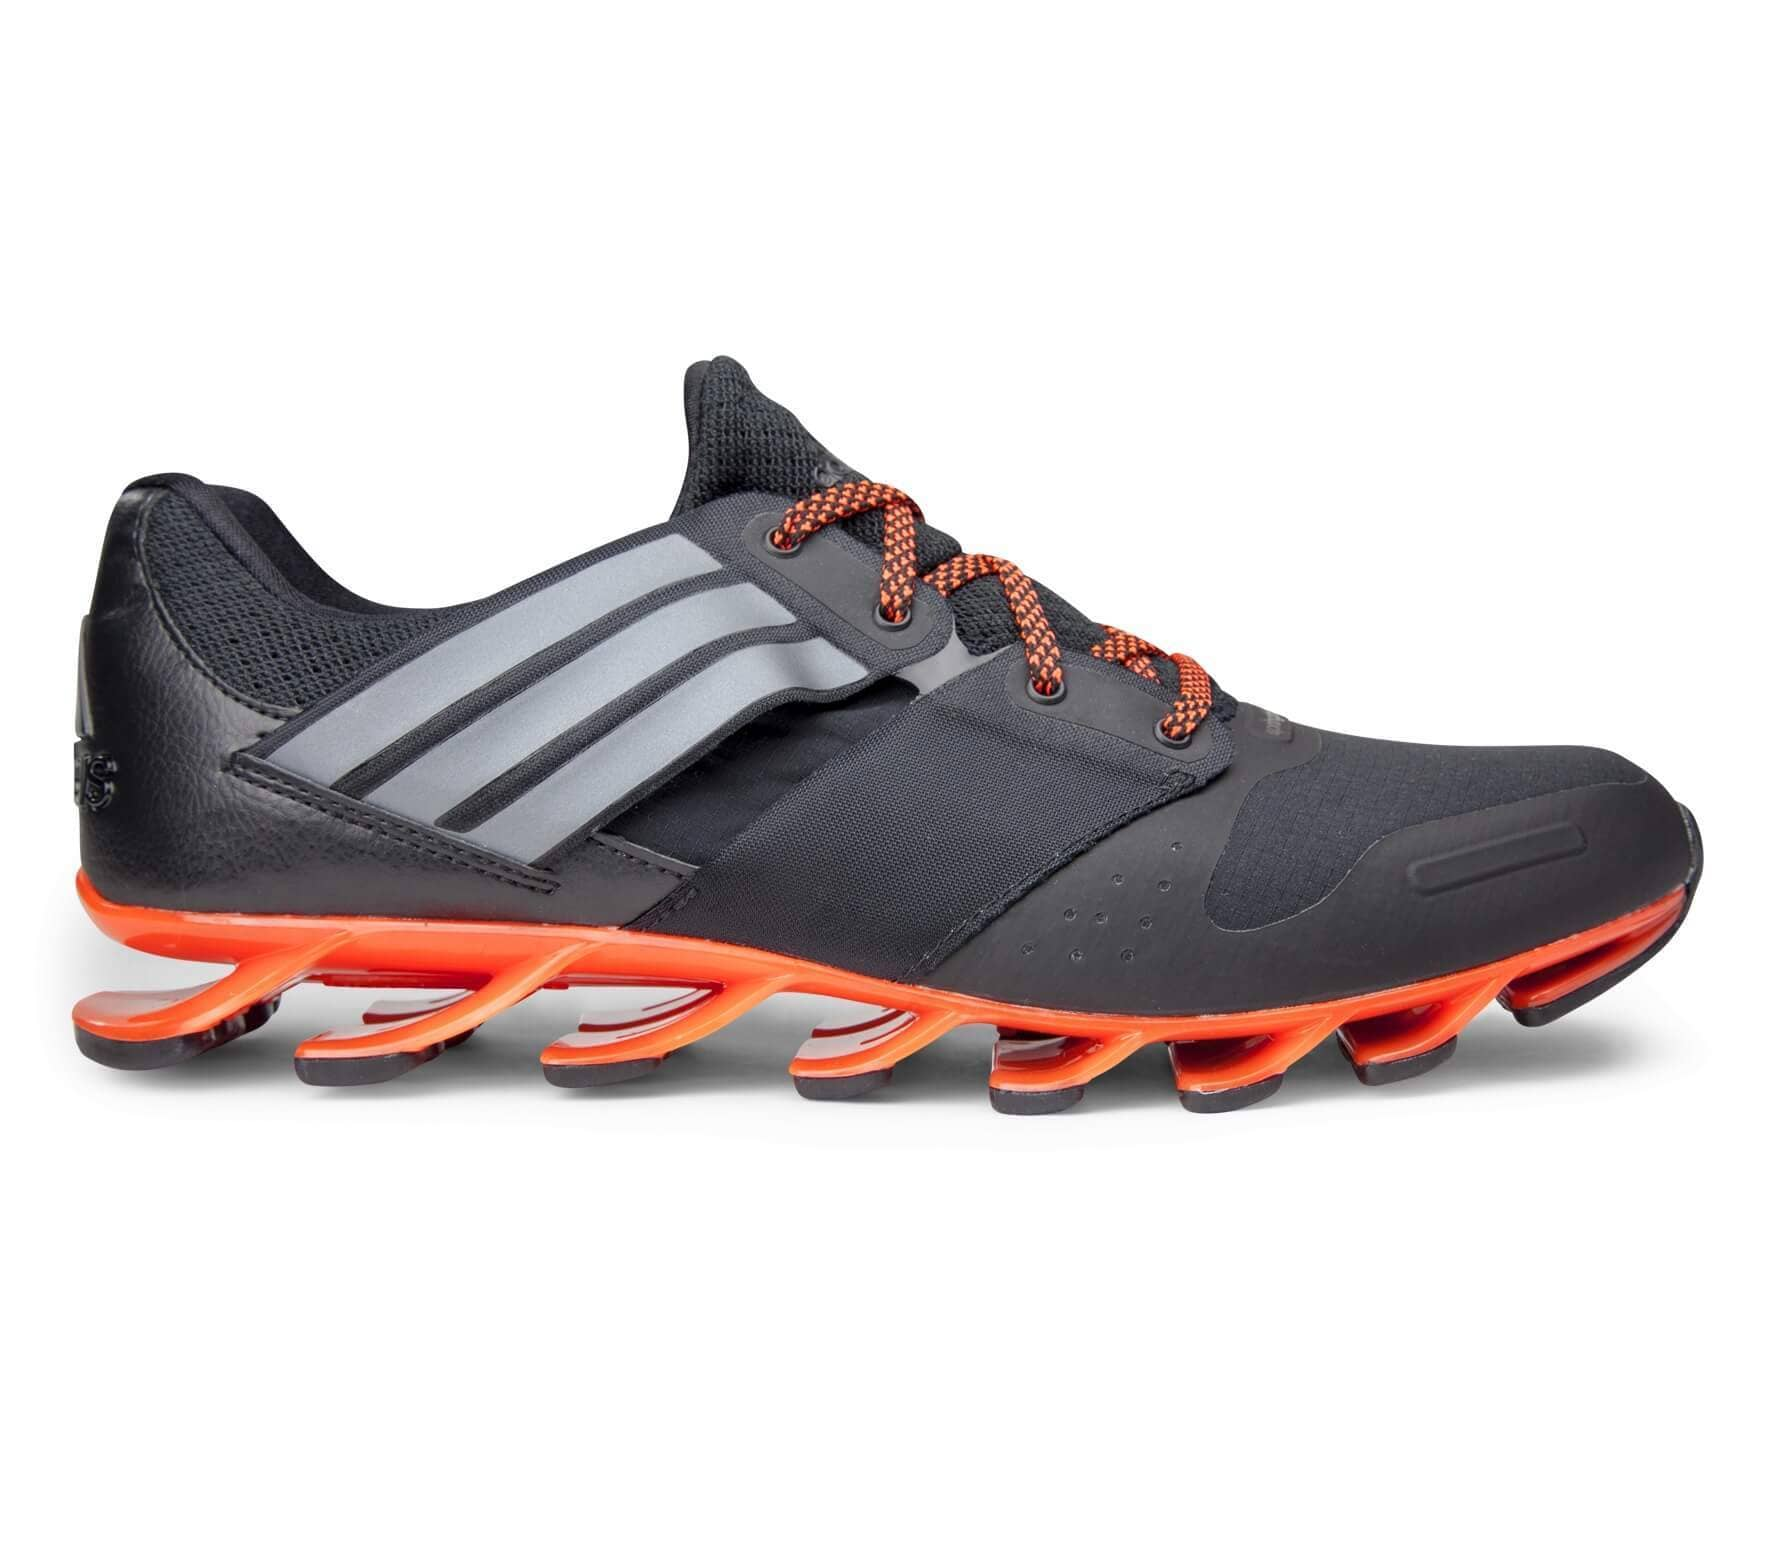 low priced 053d0 25463 Adidas - Springblade Solyce men's running shoes (black/orange)